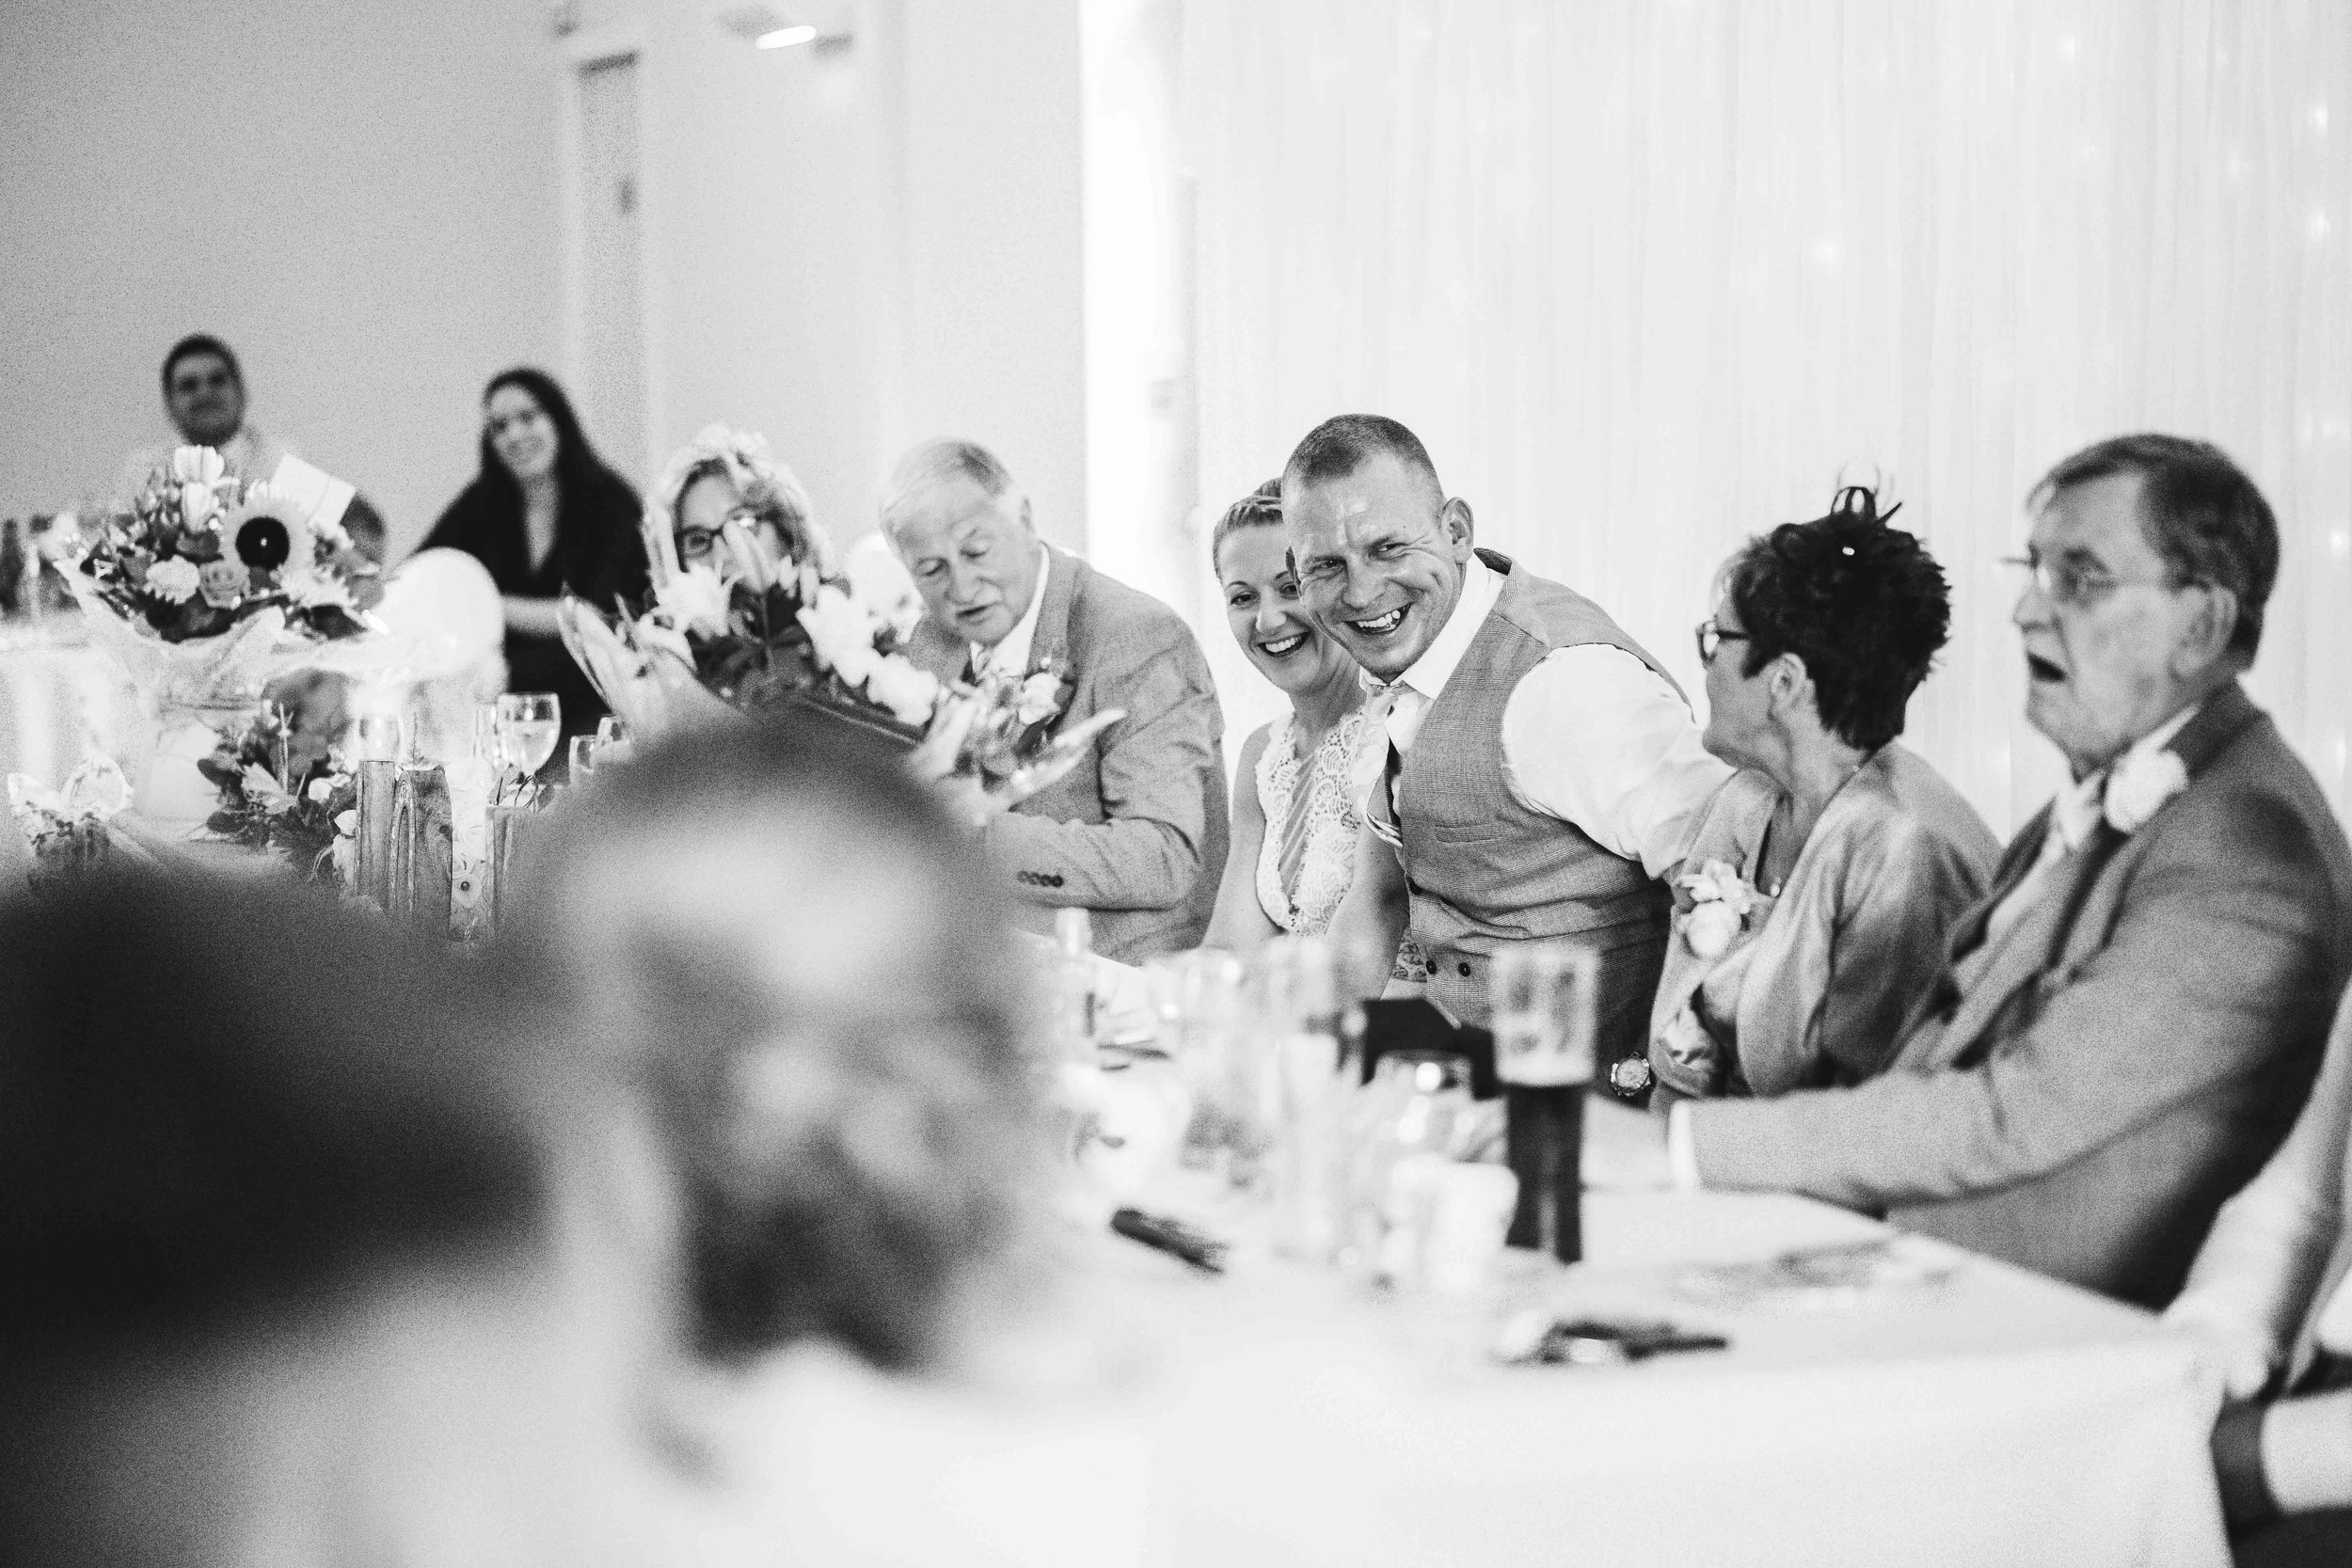 LEA-COOPER-PHOTOGRAPHY-WEDDING-PHOTOGRAPHER-WILLENHALL-WOLVERHAMPTON-BIRMINGHAM-WEDDING-PHOTOGRAPHY-WEST-MIDLANDS-UK-STOKE-ON-TRENT-FLORAL-HALL-9.JPG